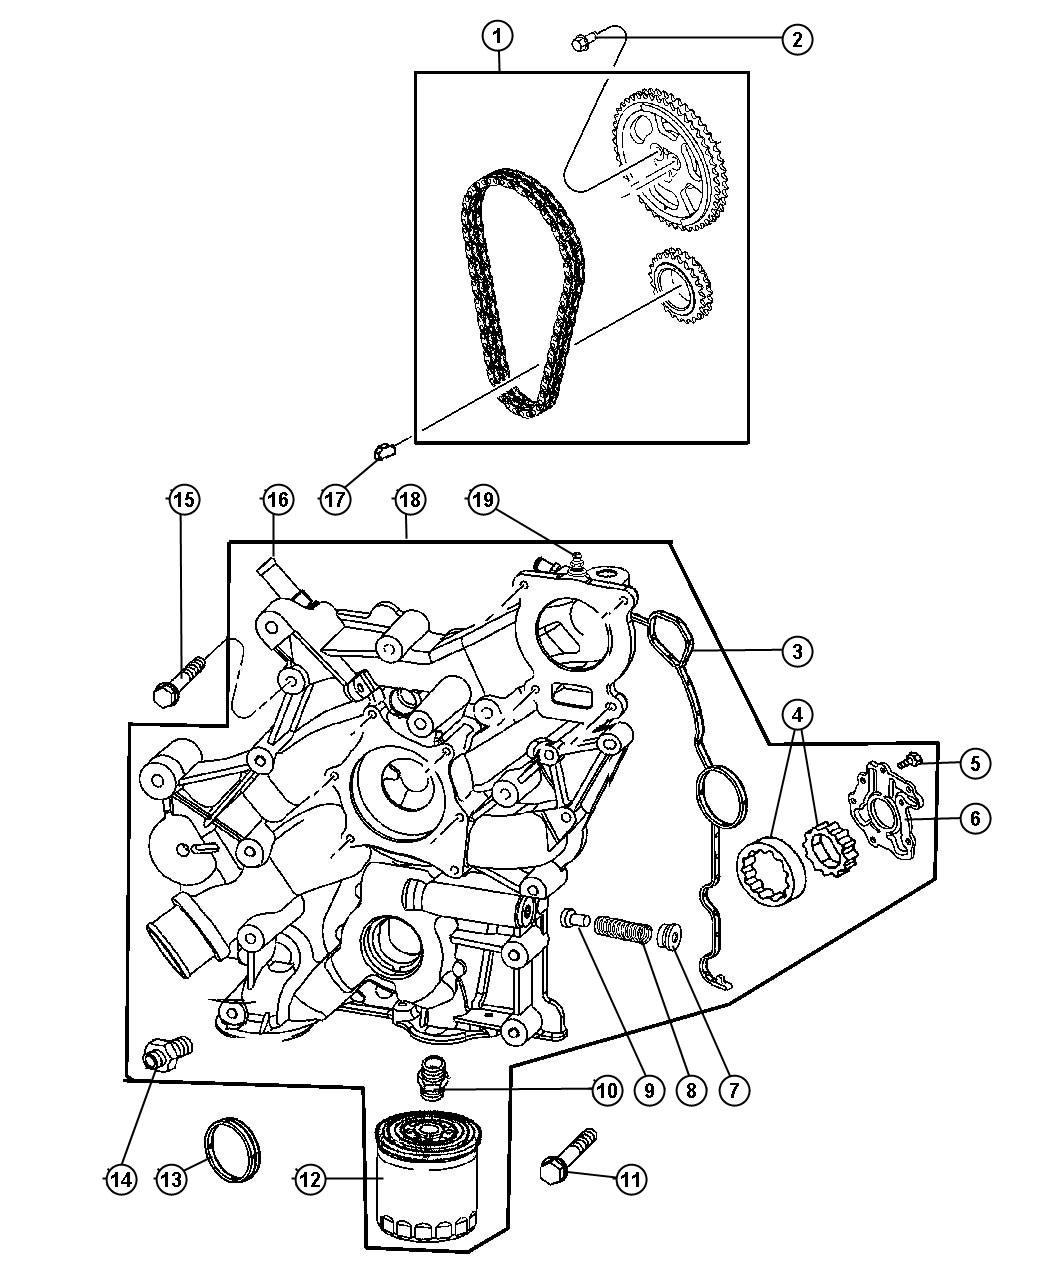 Dodge Ram 1500 Chain package. Timing. Ewc, cover, belt